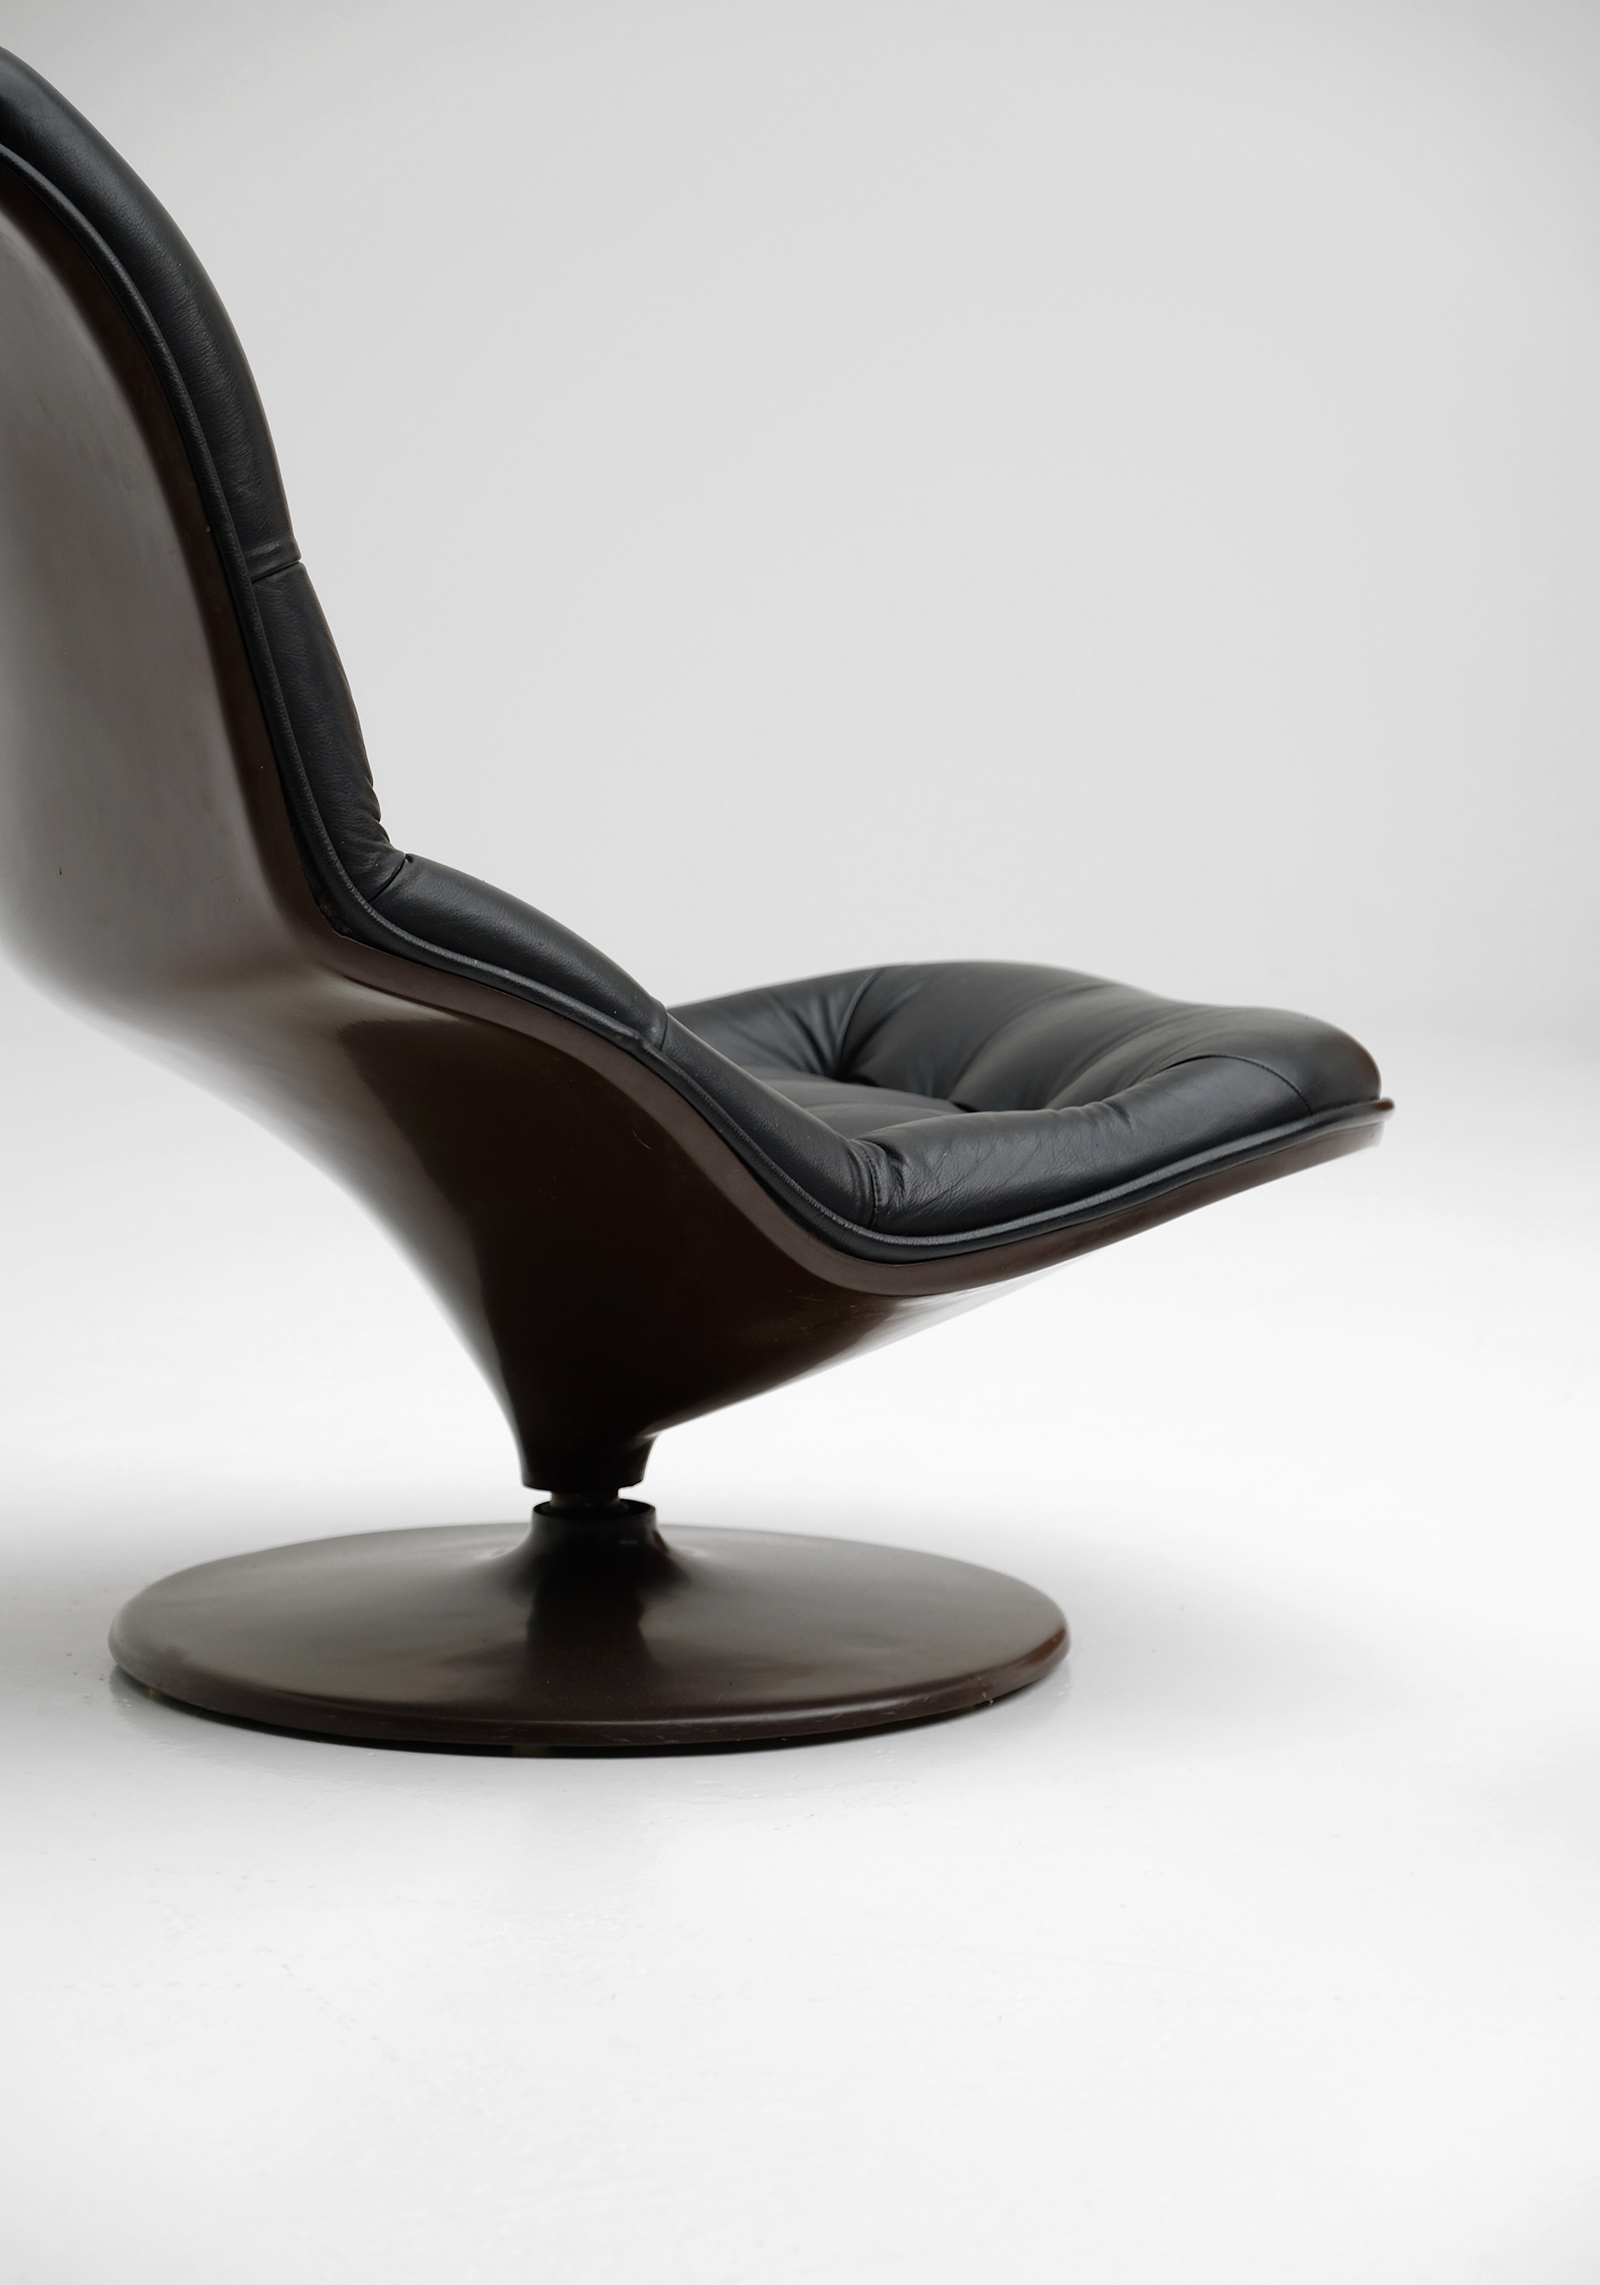 Georges Van Rijck Shelby Lounge chairimage 4